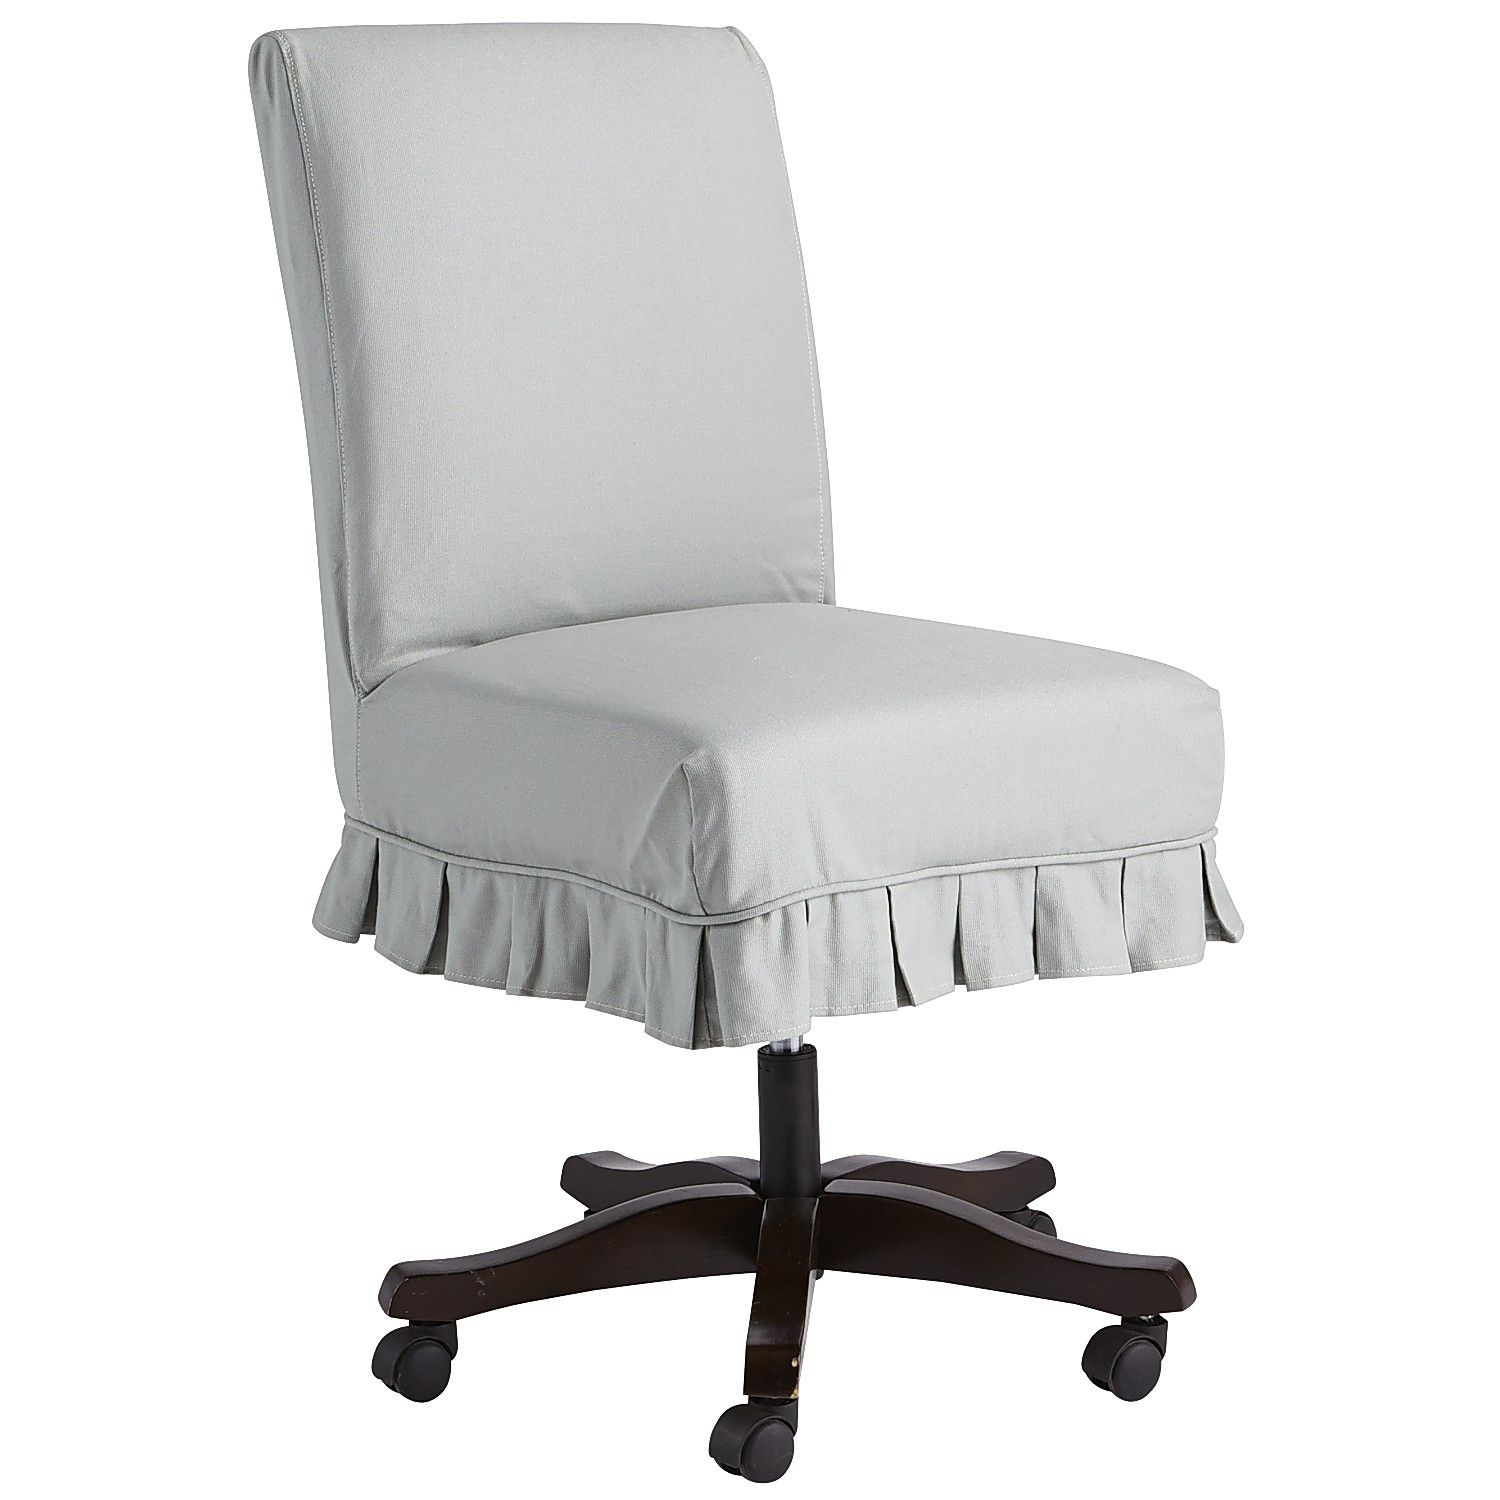 use chair thinking office my pin been about ve sewing covering interesting treatment back slipcover might i